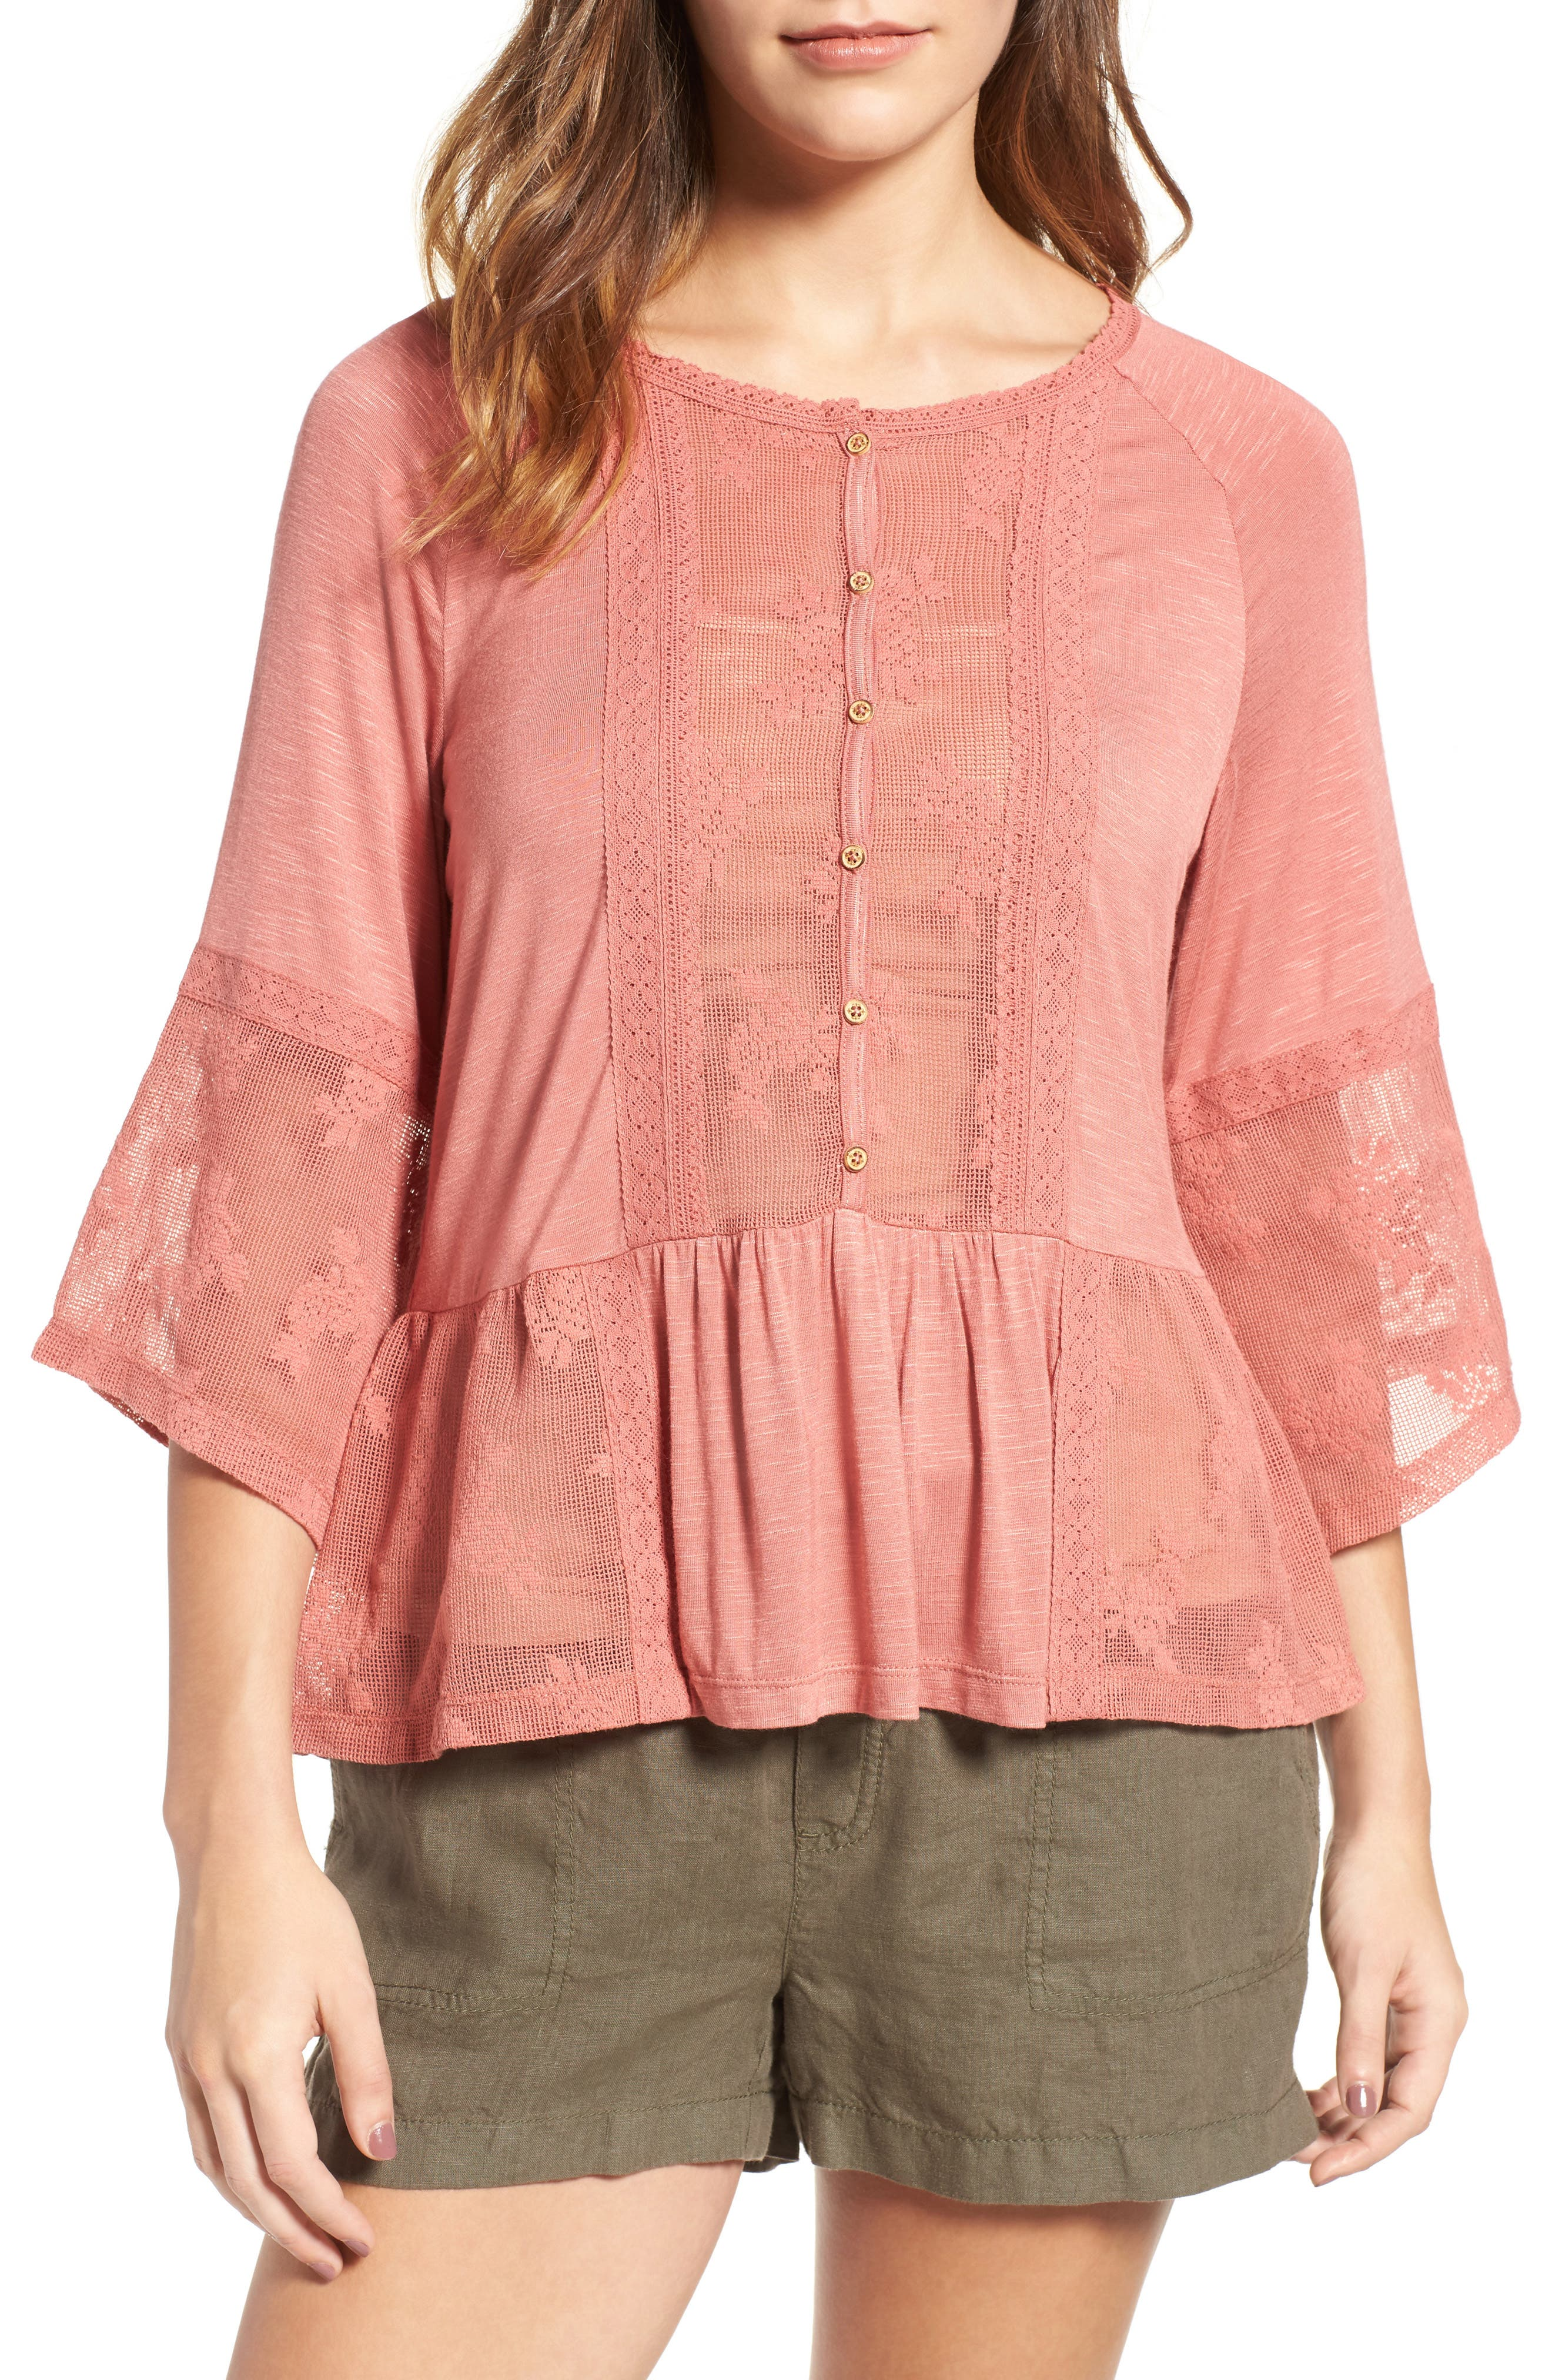 Alternate Image 1 Selected - Wit & Wisdom Mixed Media Flounce Top (Nordstrom Exclusive)